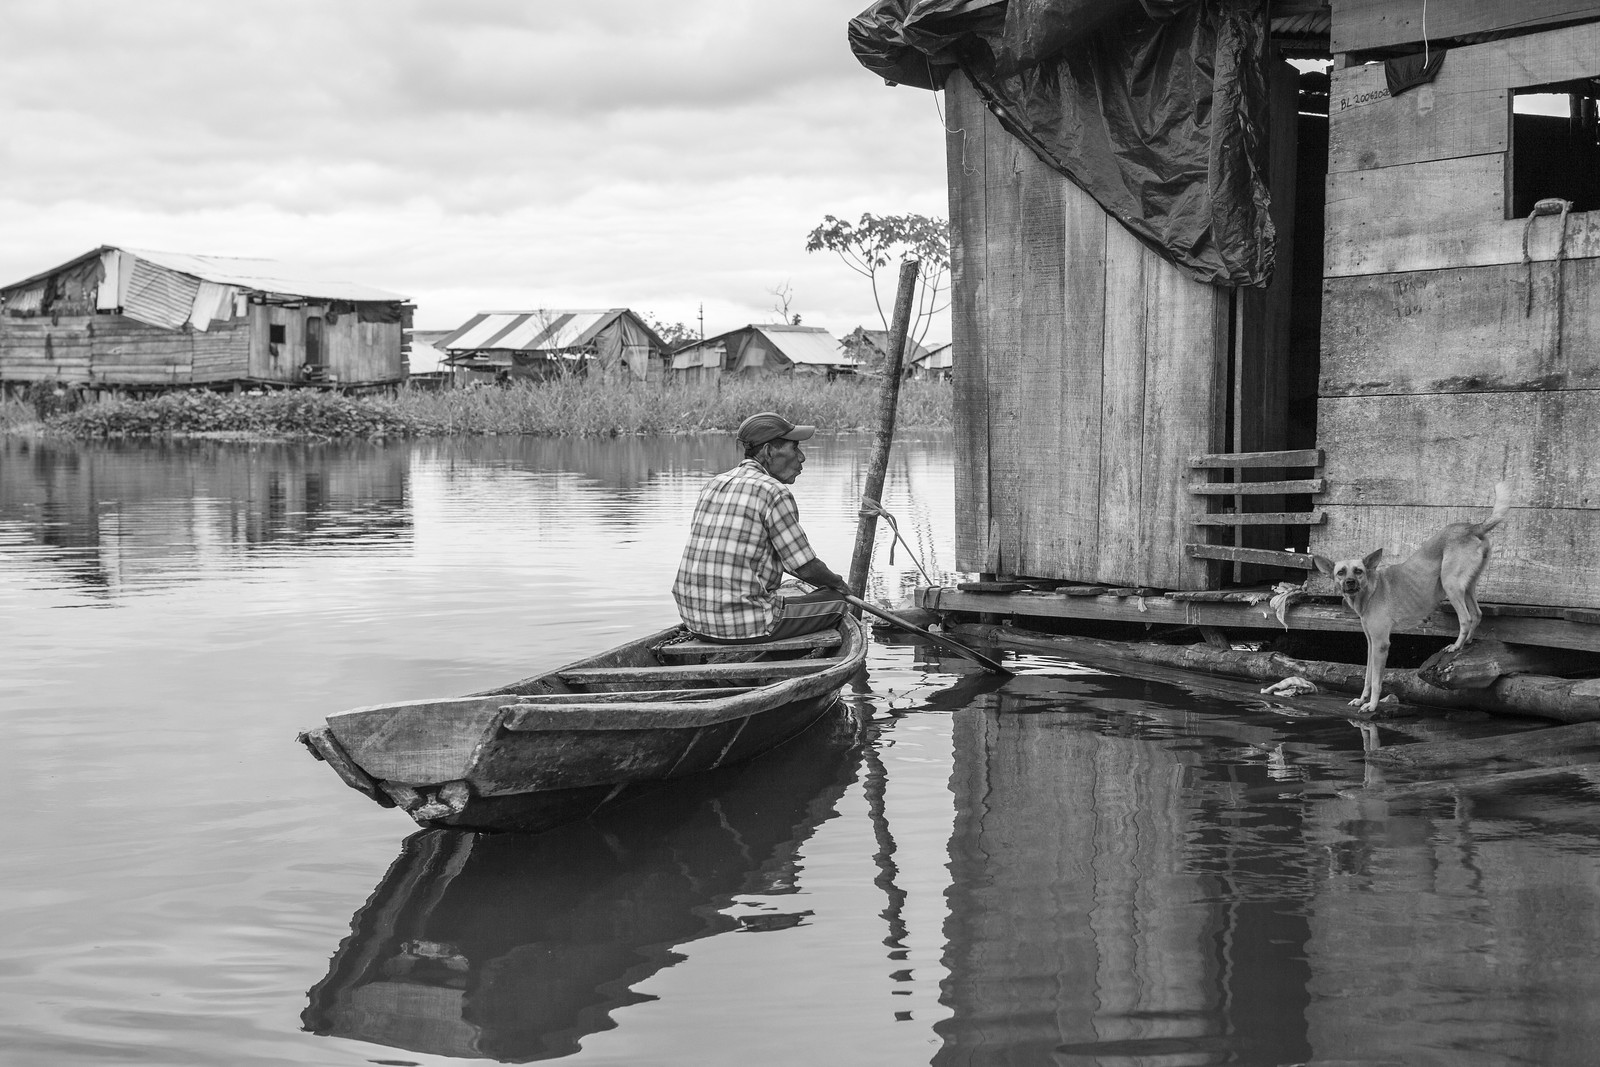 Man & Dog, Down on the River, Iquitos | by Geraint Rowland Photography